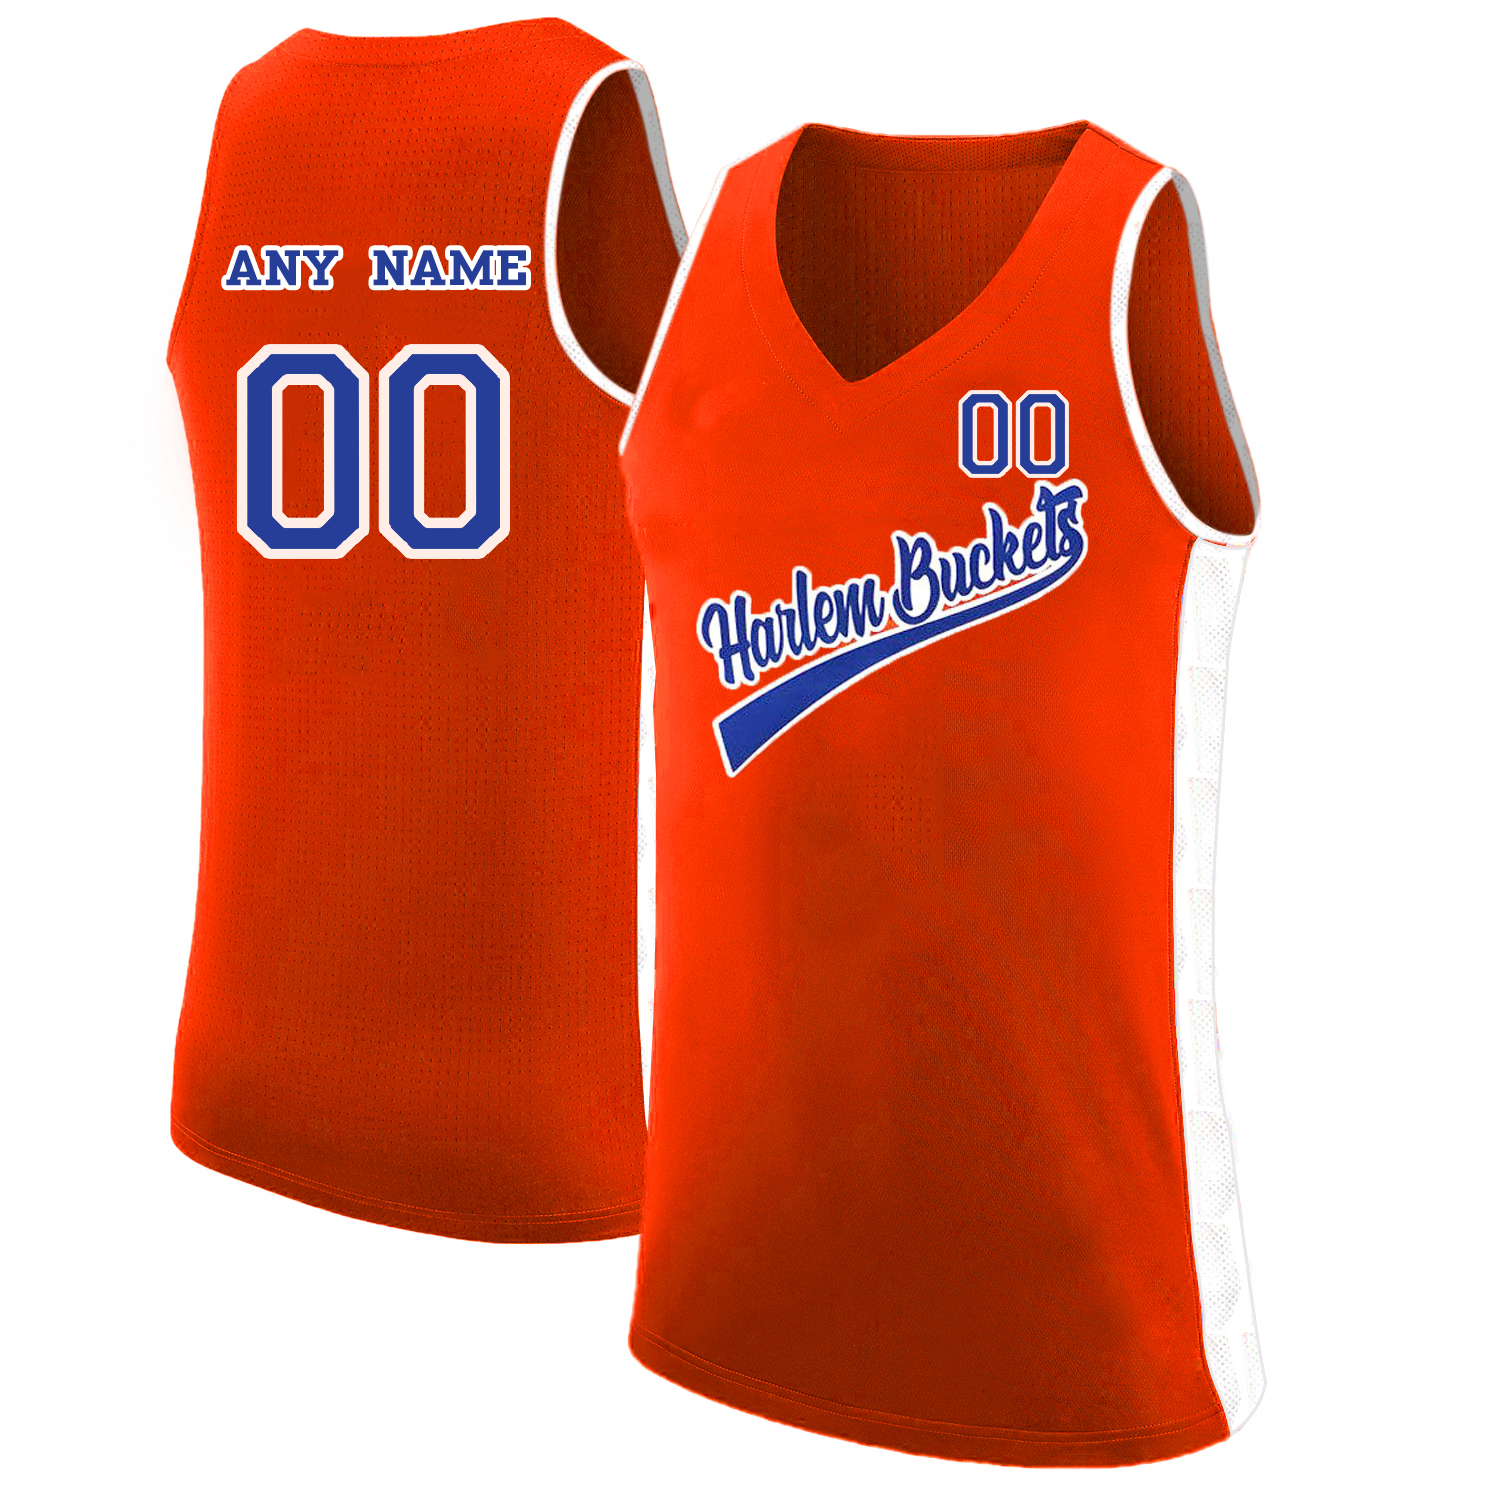 Harlem Buckets Customized Orange Uncle Drew Basketball Jersey